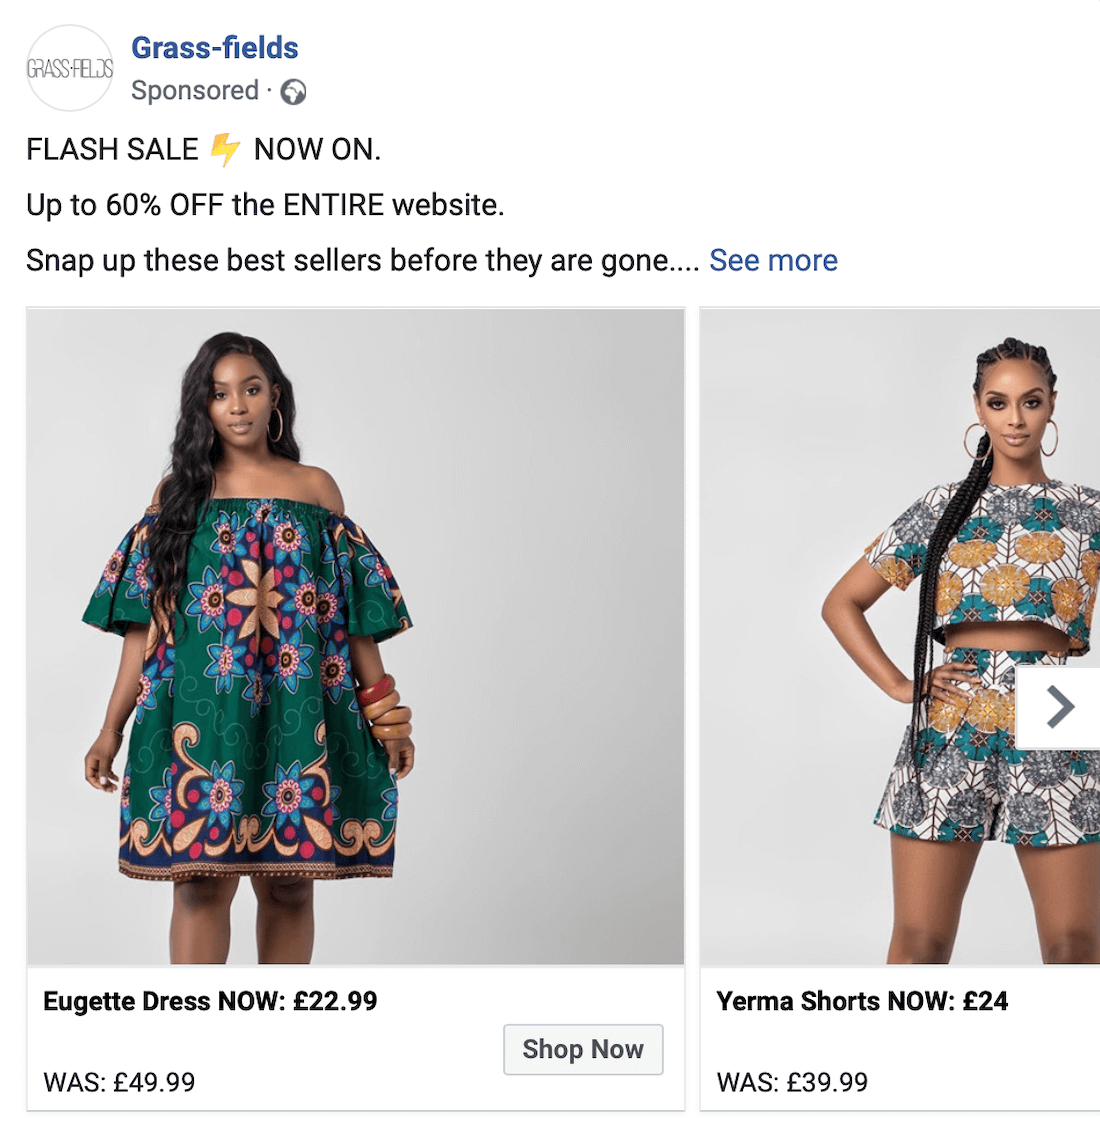 example of Facebook flash sale ad